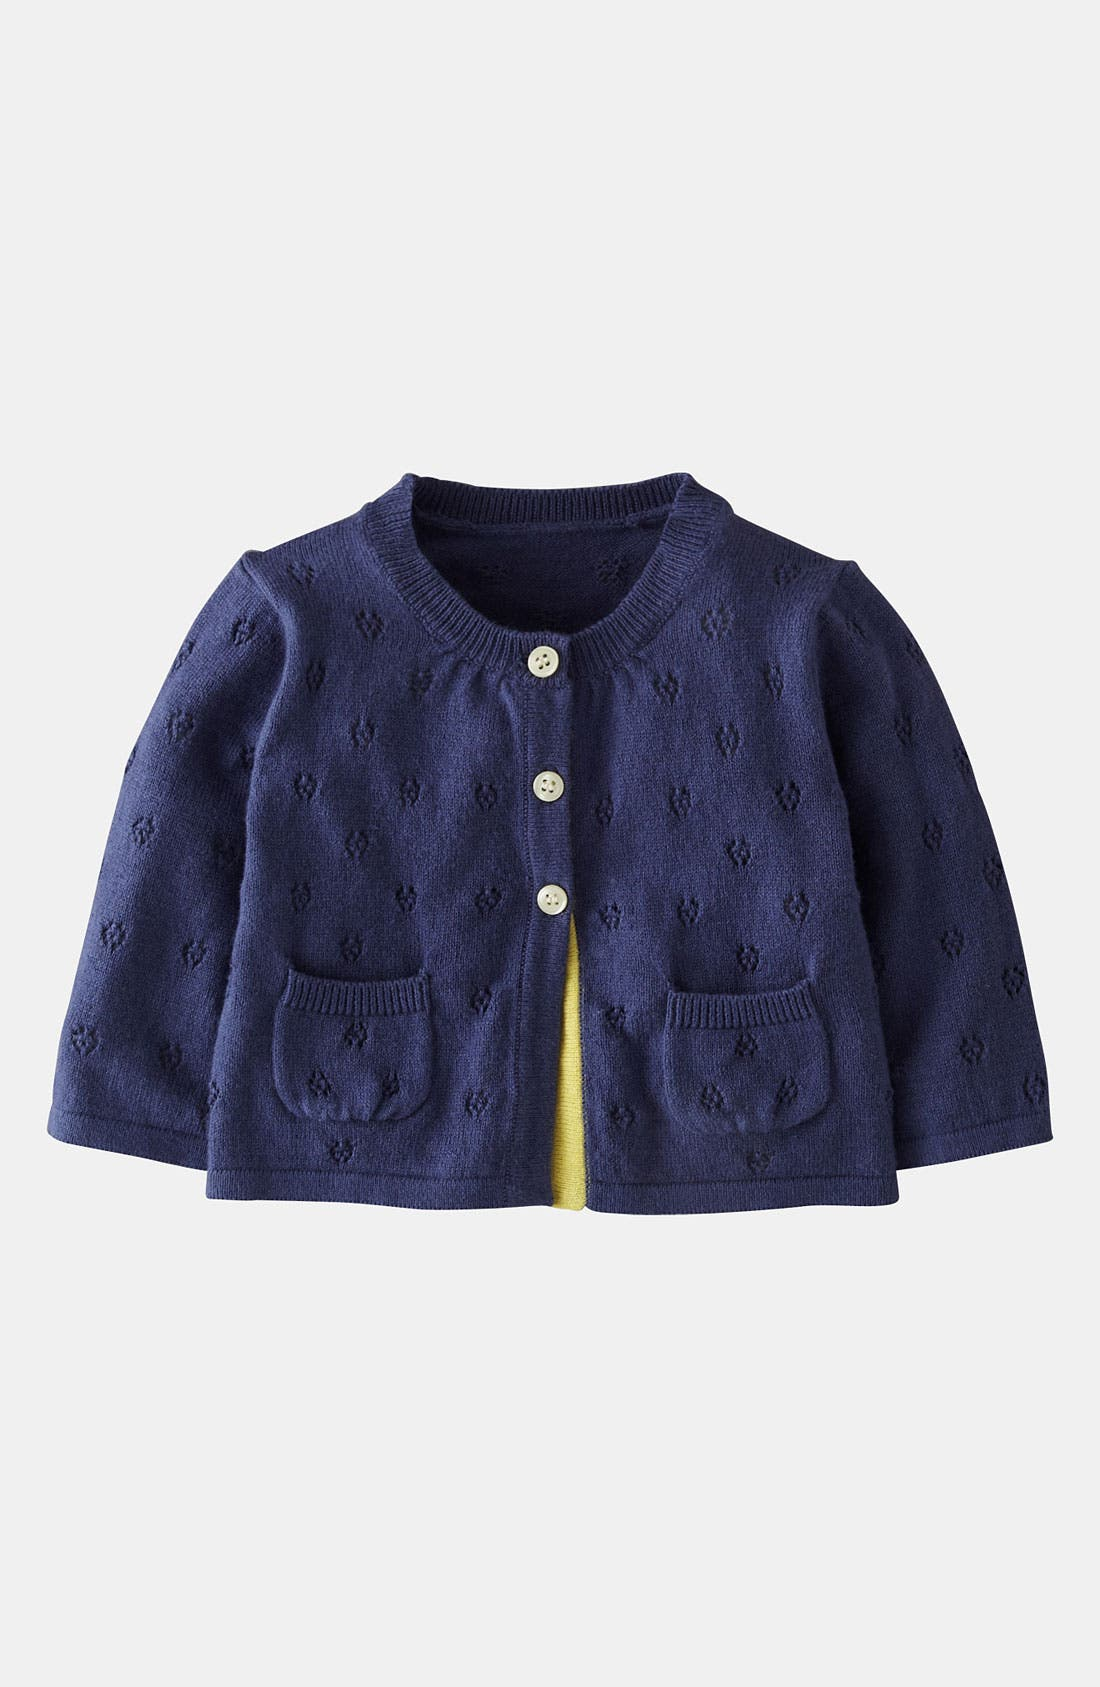 Main Image - Mini Boden Pointelle Cardigan (Baby)